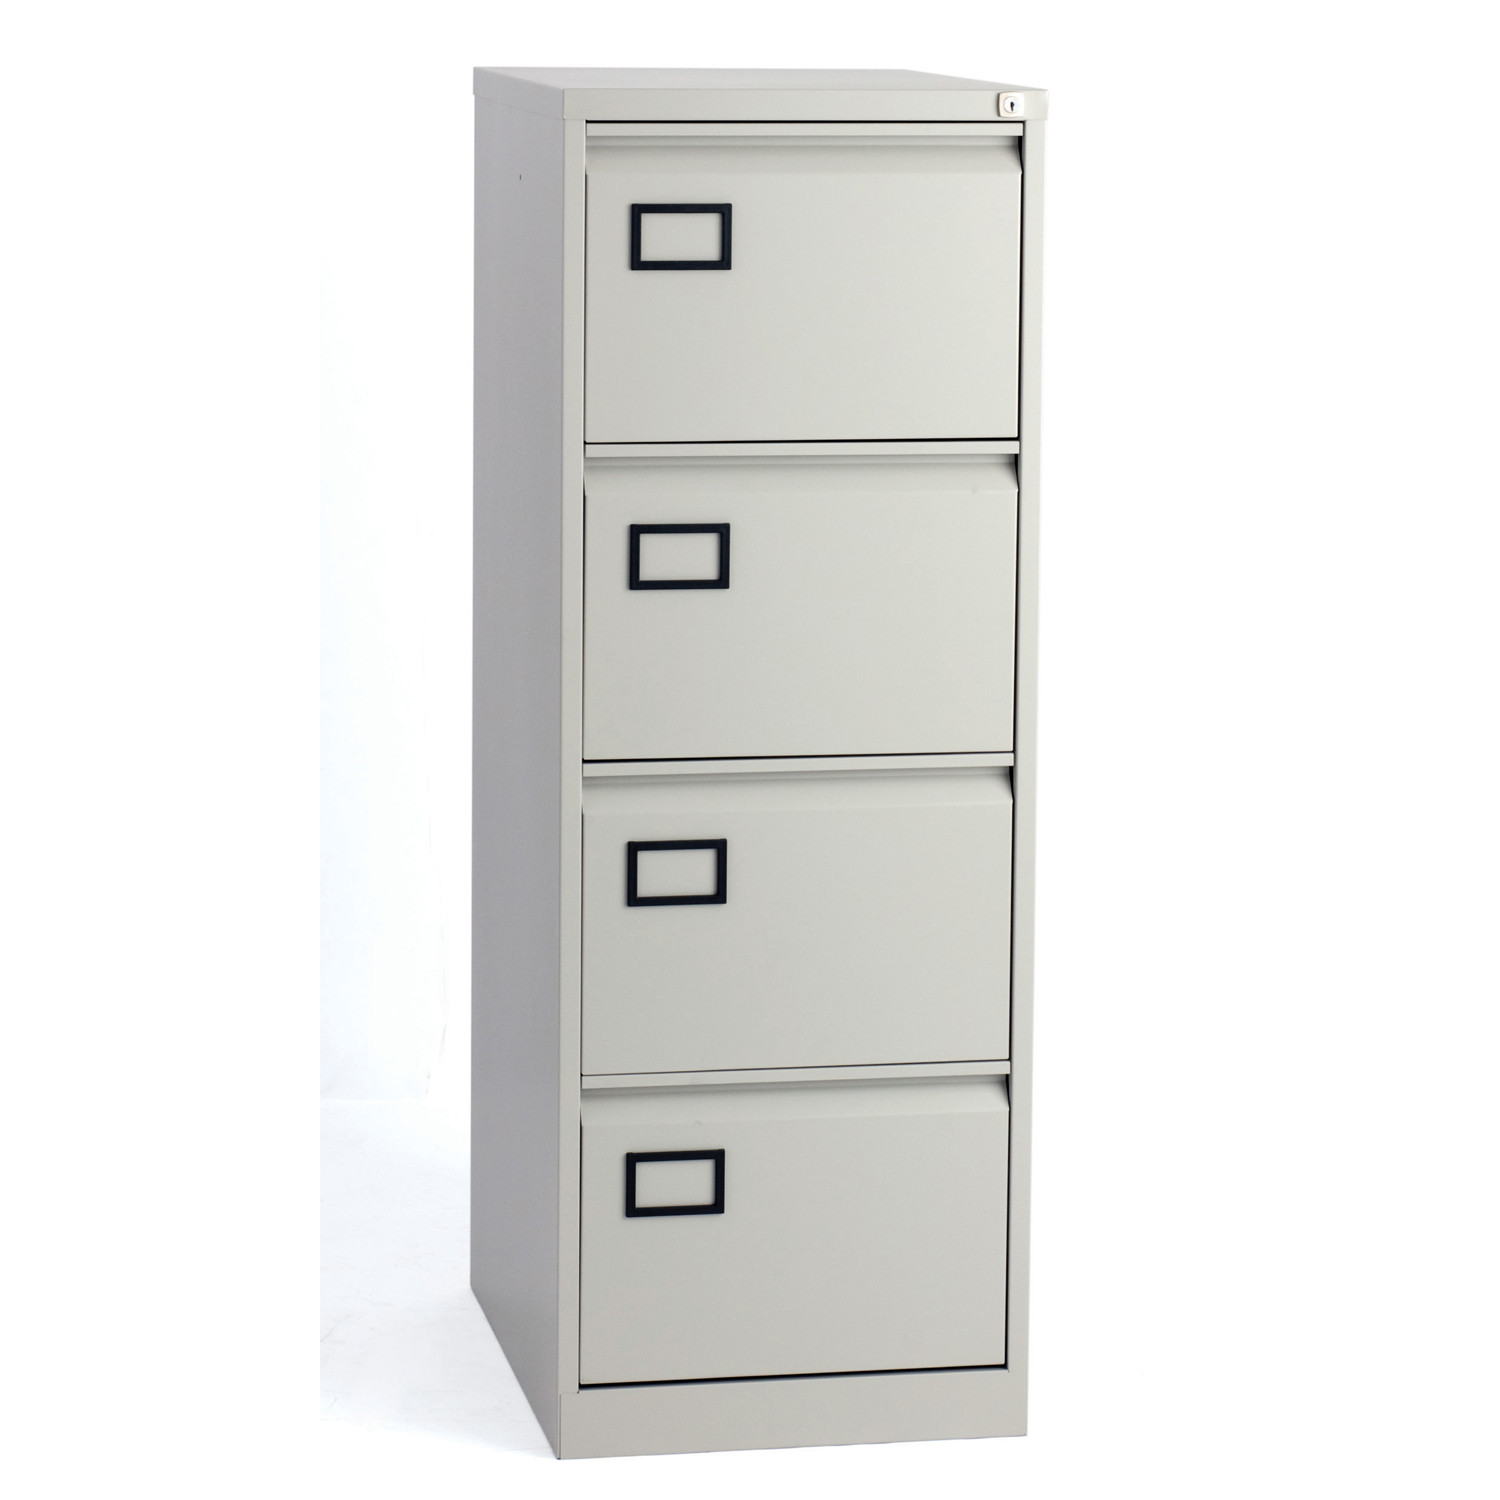 AOC 4 Drawer Filing Cabinet from Bisley